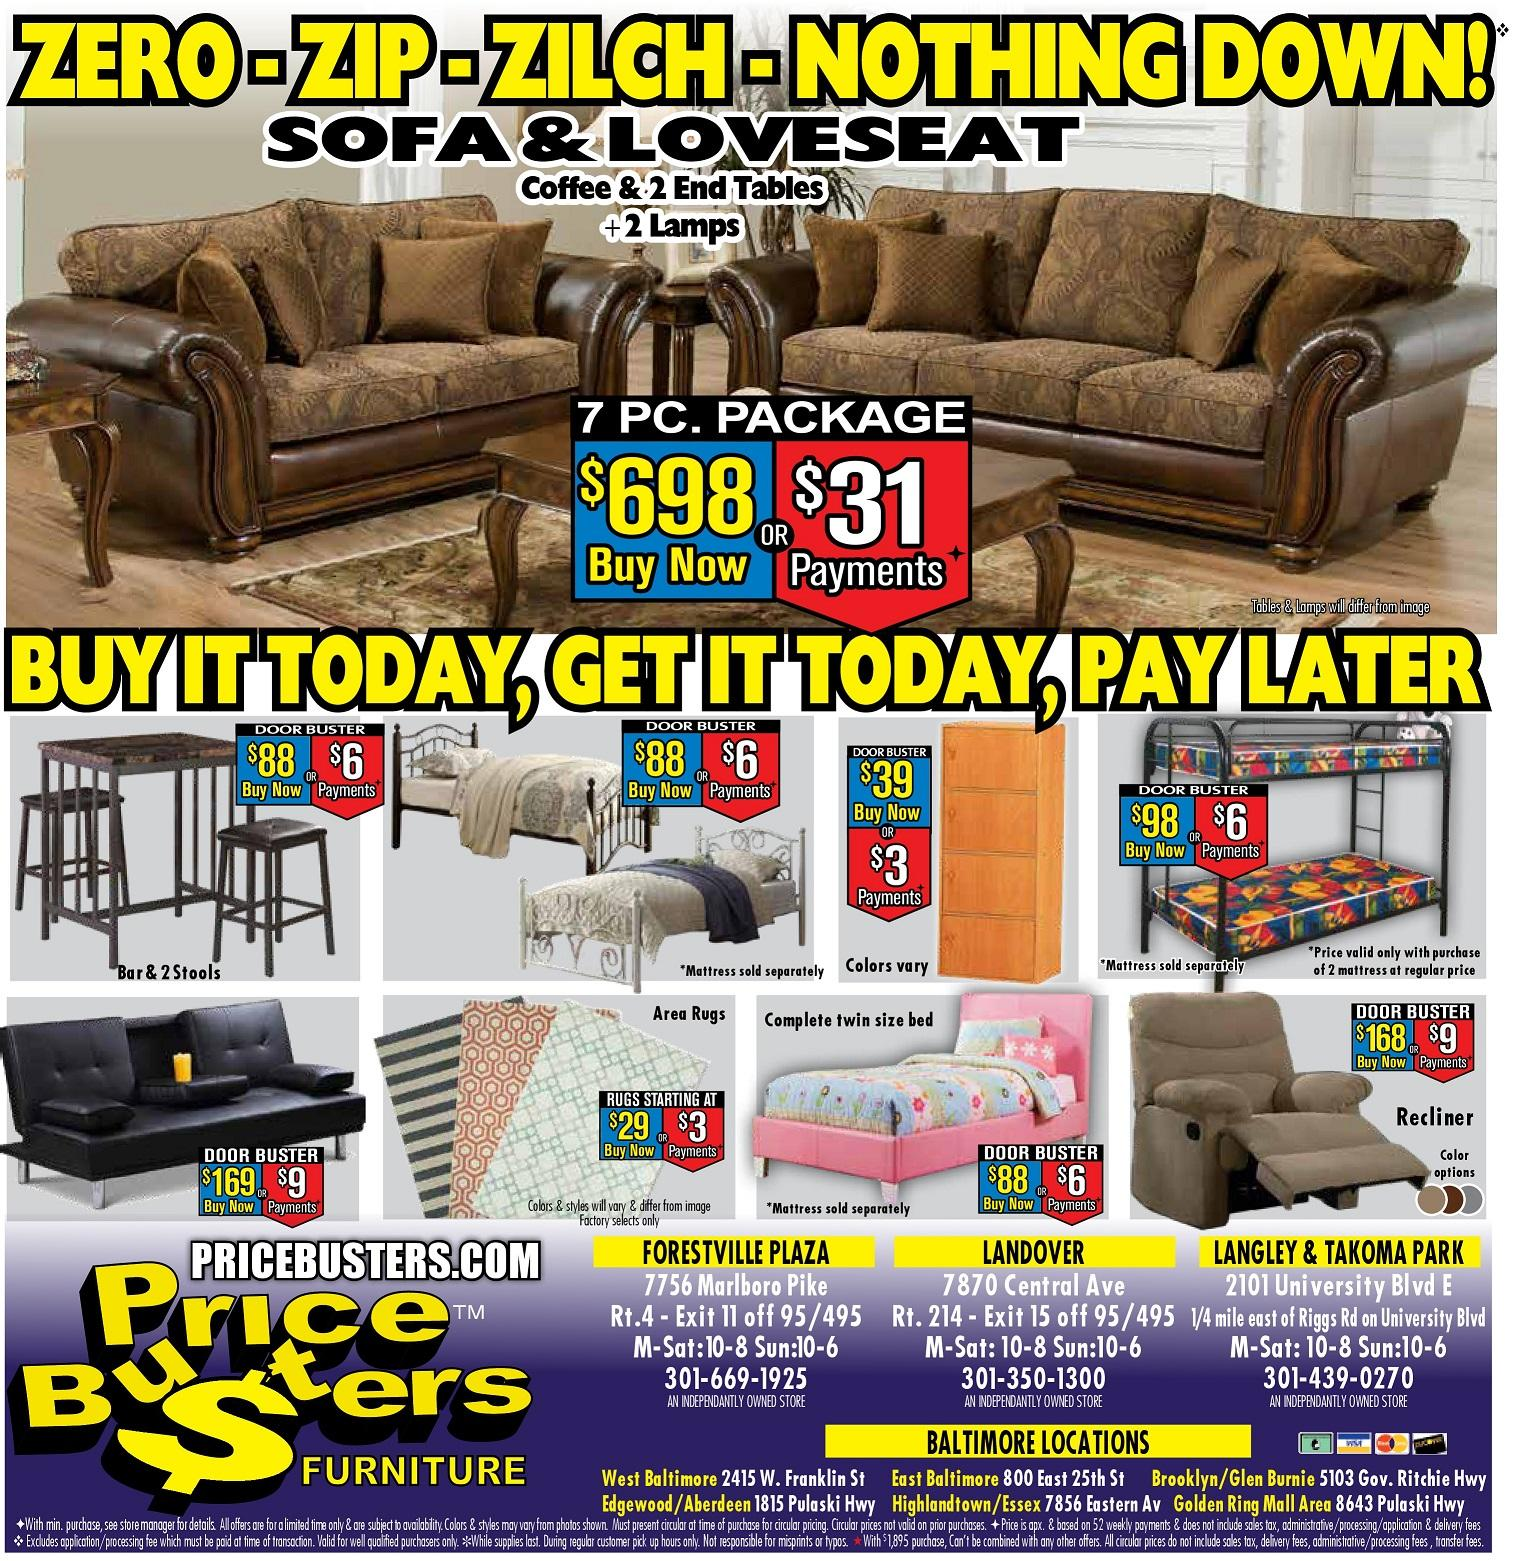 Furniture Store Cheap Prices: Price Busters Discount Furniture